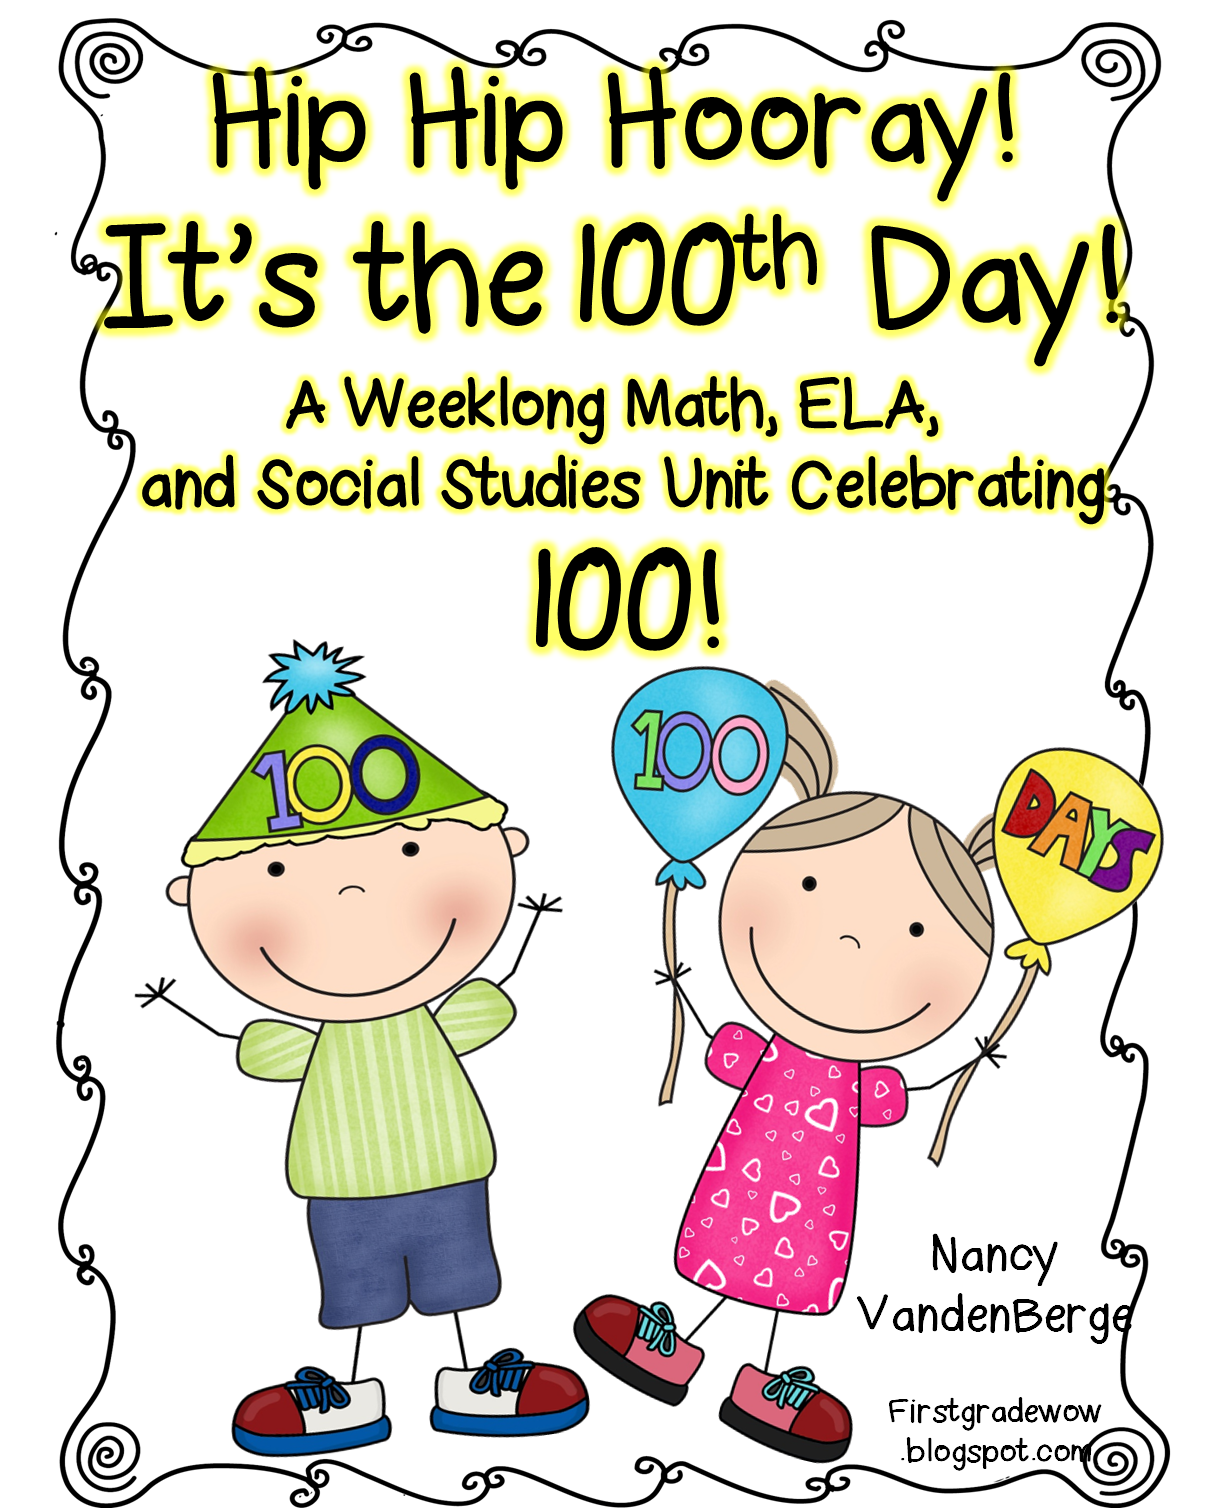 First Grade Wow 100th Day It S Almost Here